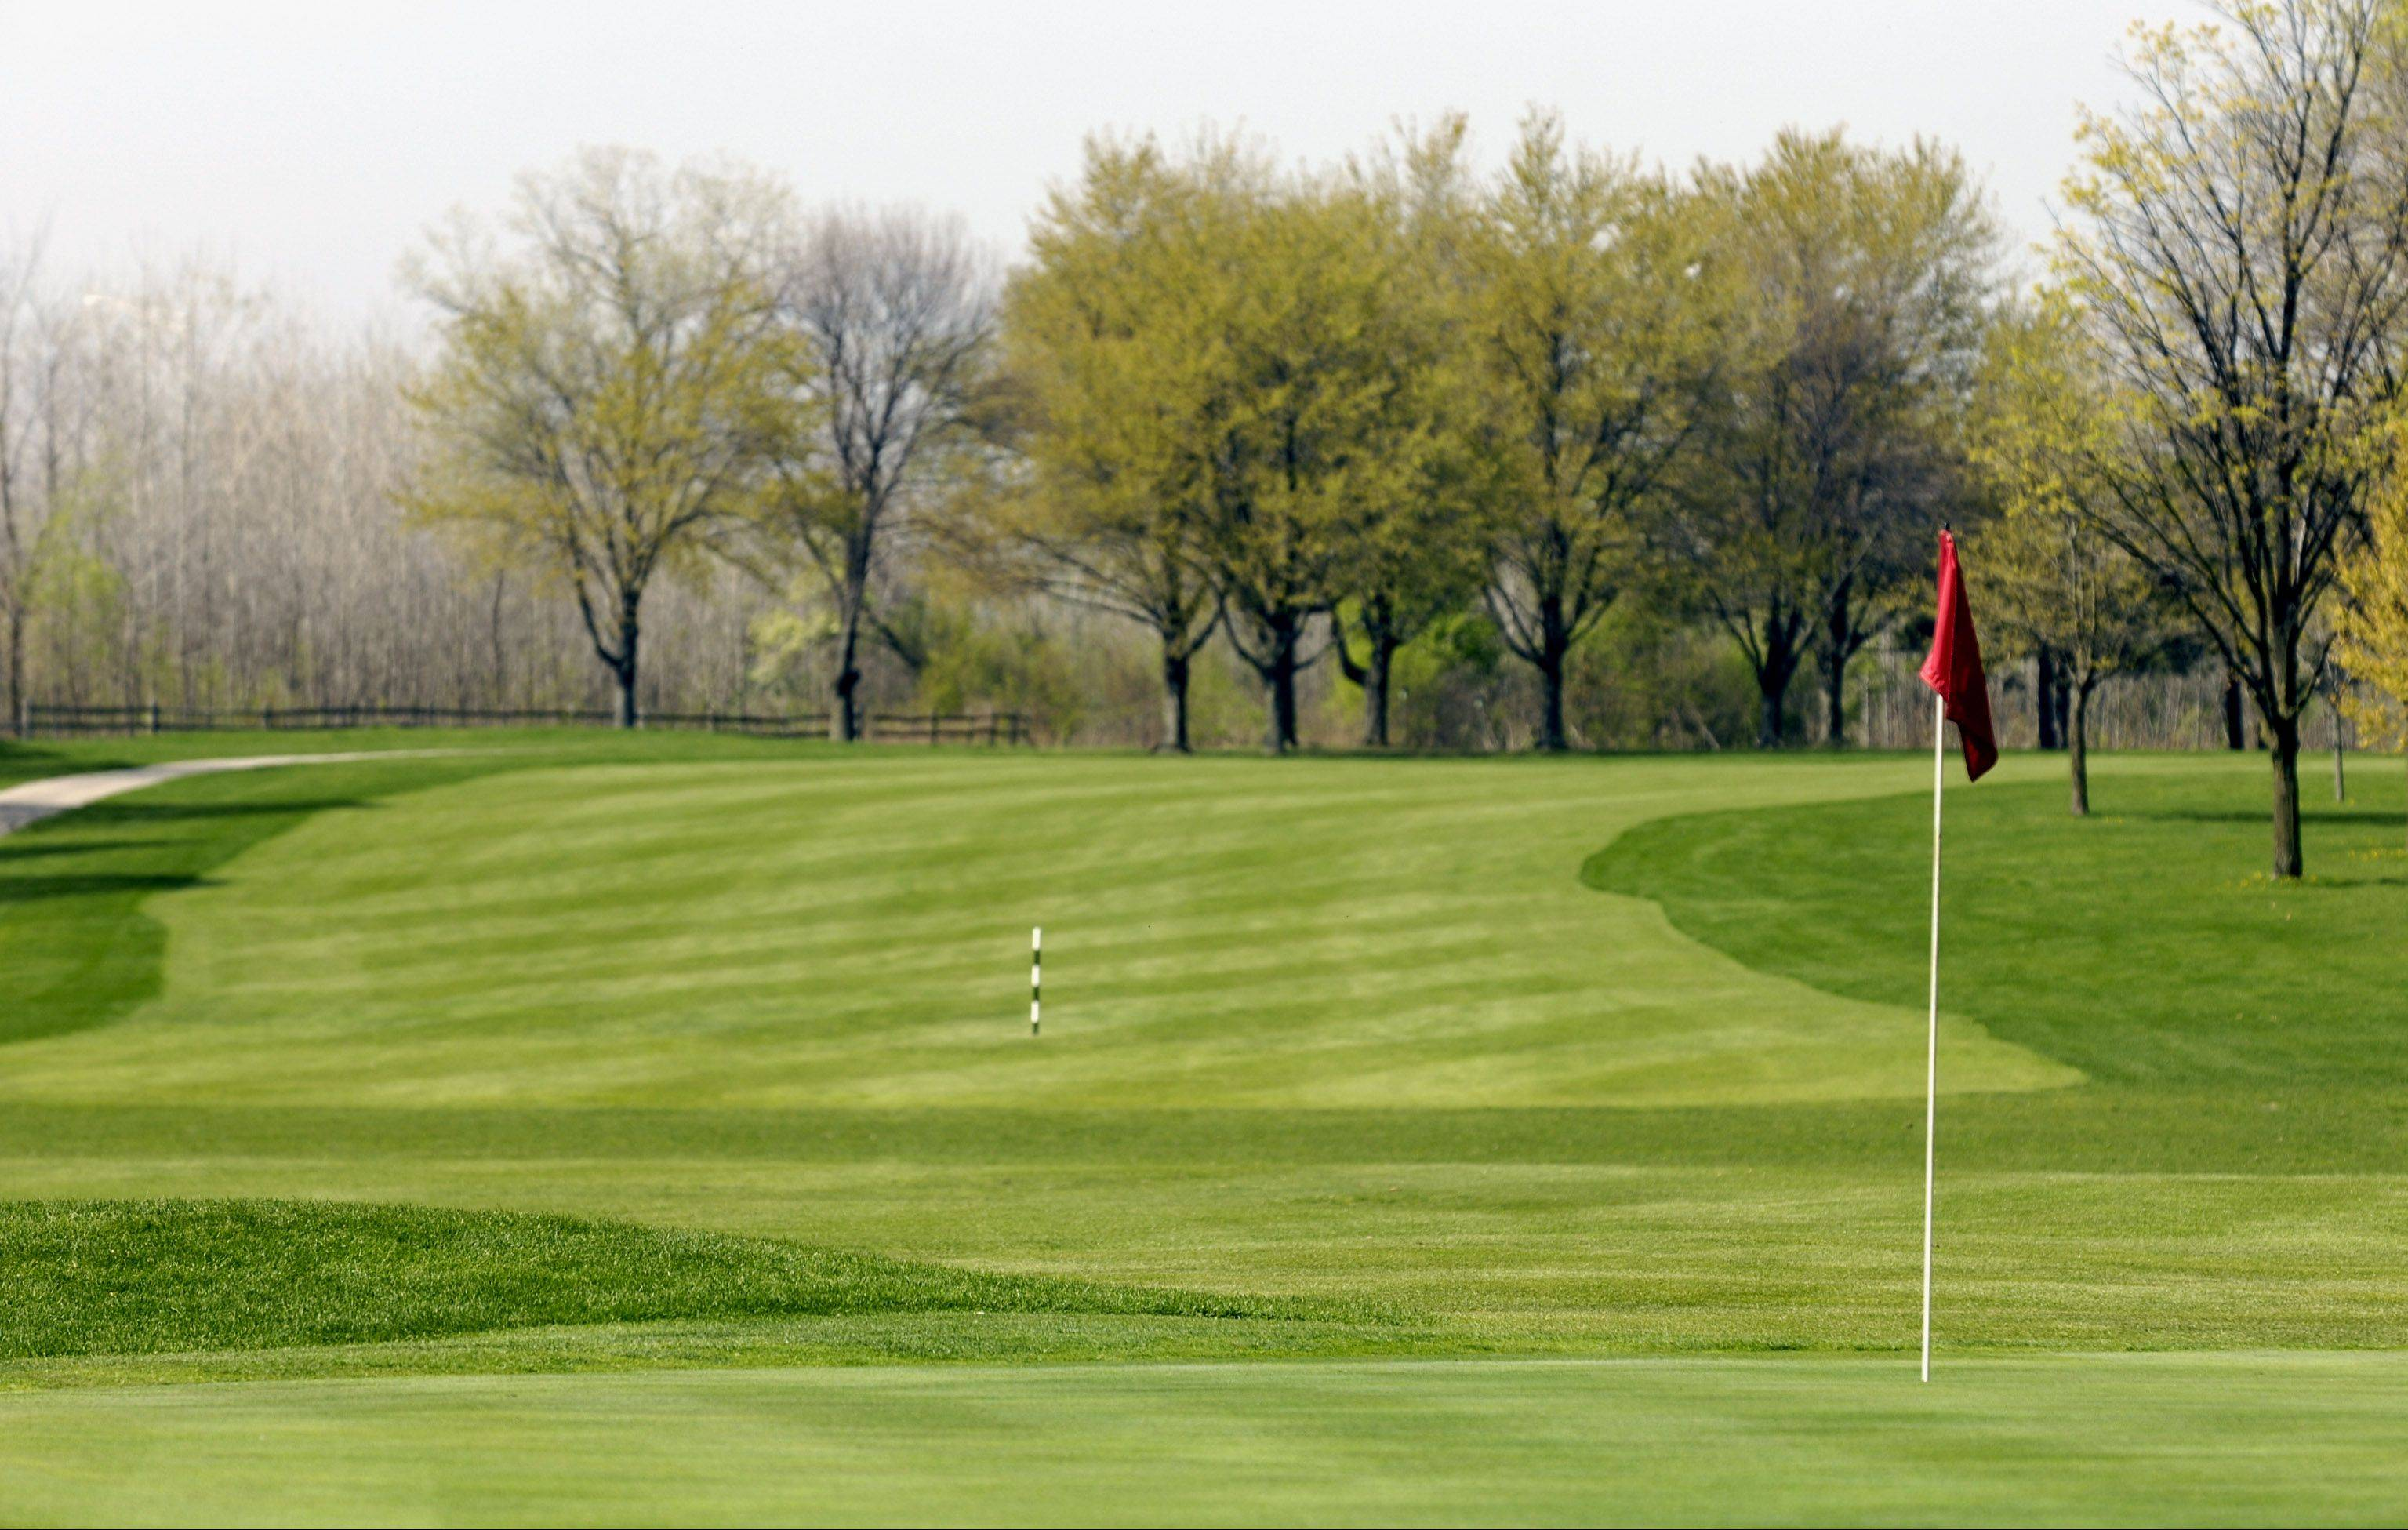 DuPage County Forest Preserve officials are paying about $95,000 to an engineering firm to design the next phase of a $19.3 million improvement plan that would ease flooding and improve ecology at Oak Meadows Golf Club in Addison.